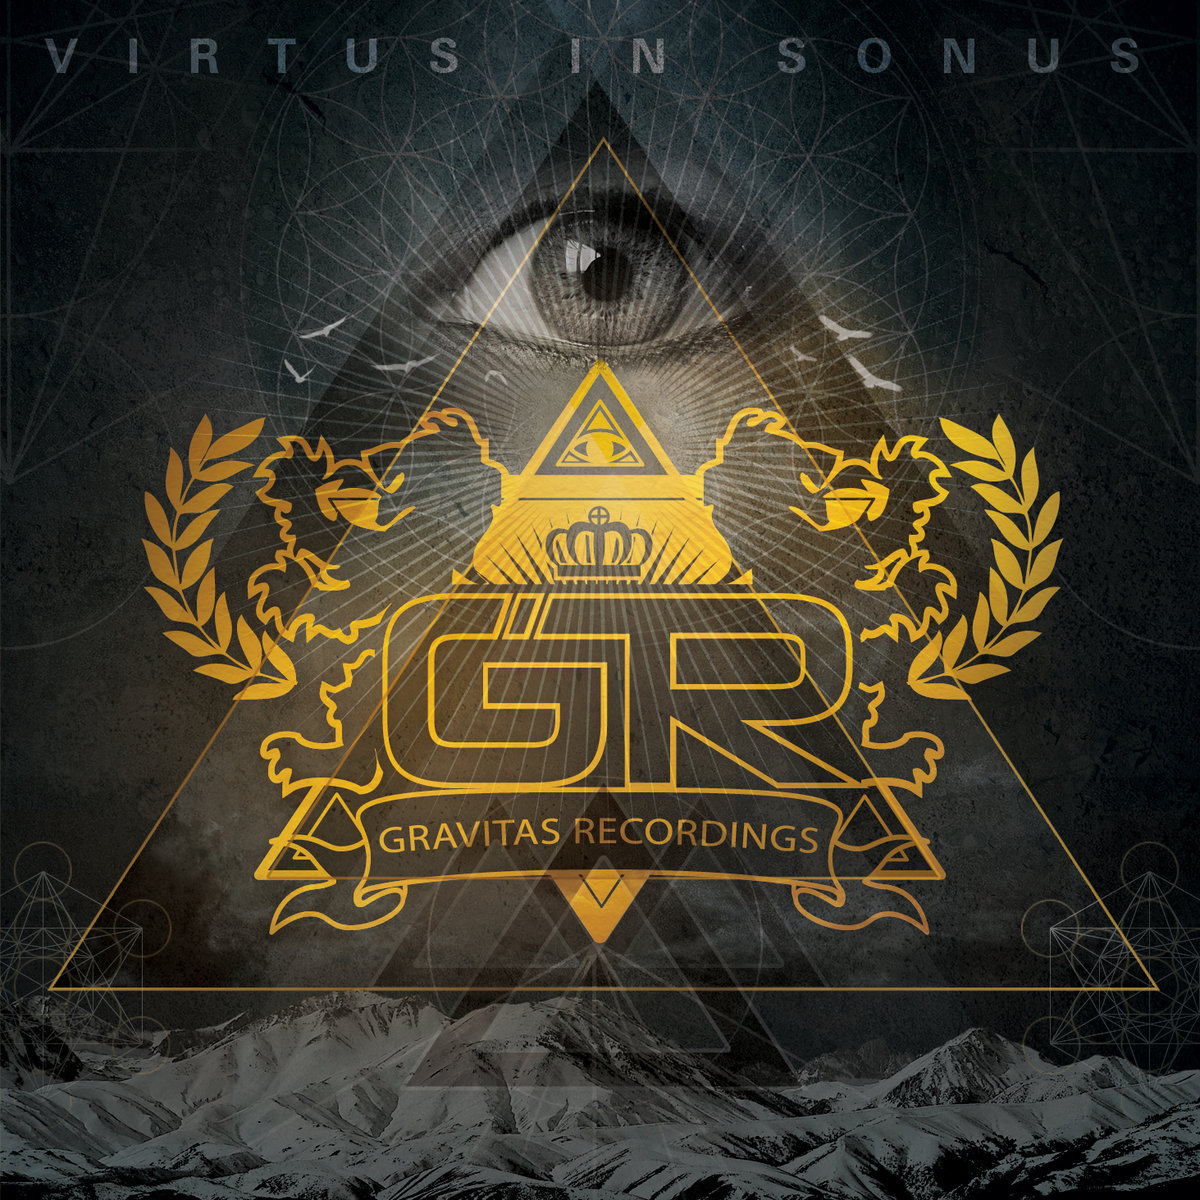 Govinda - Universal On Switch @ 'Virtus In Sonus' album (blunt instrument, boombaptist)